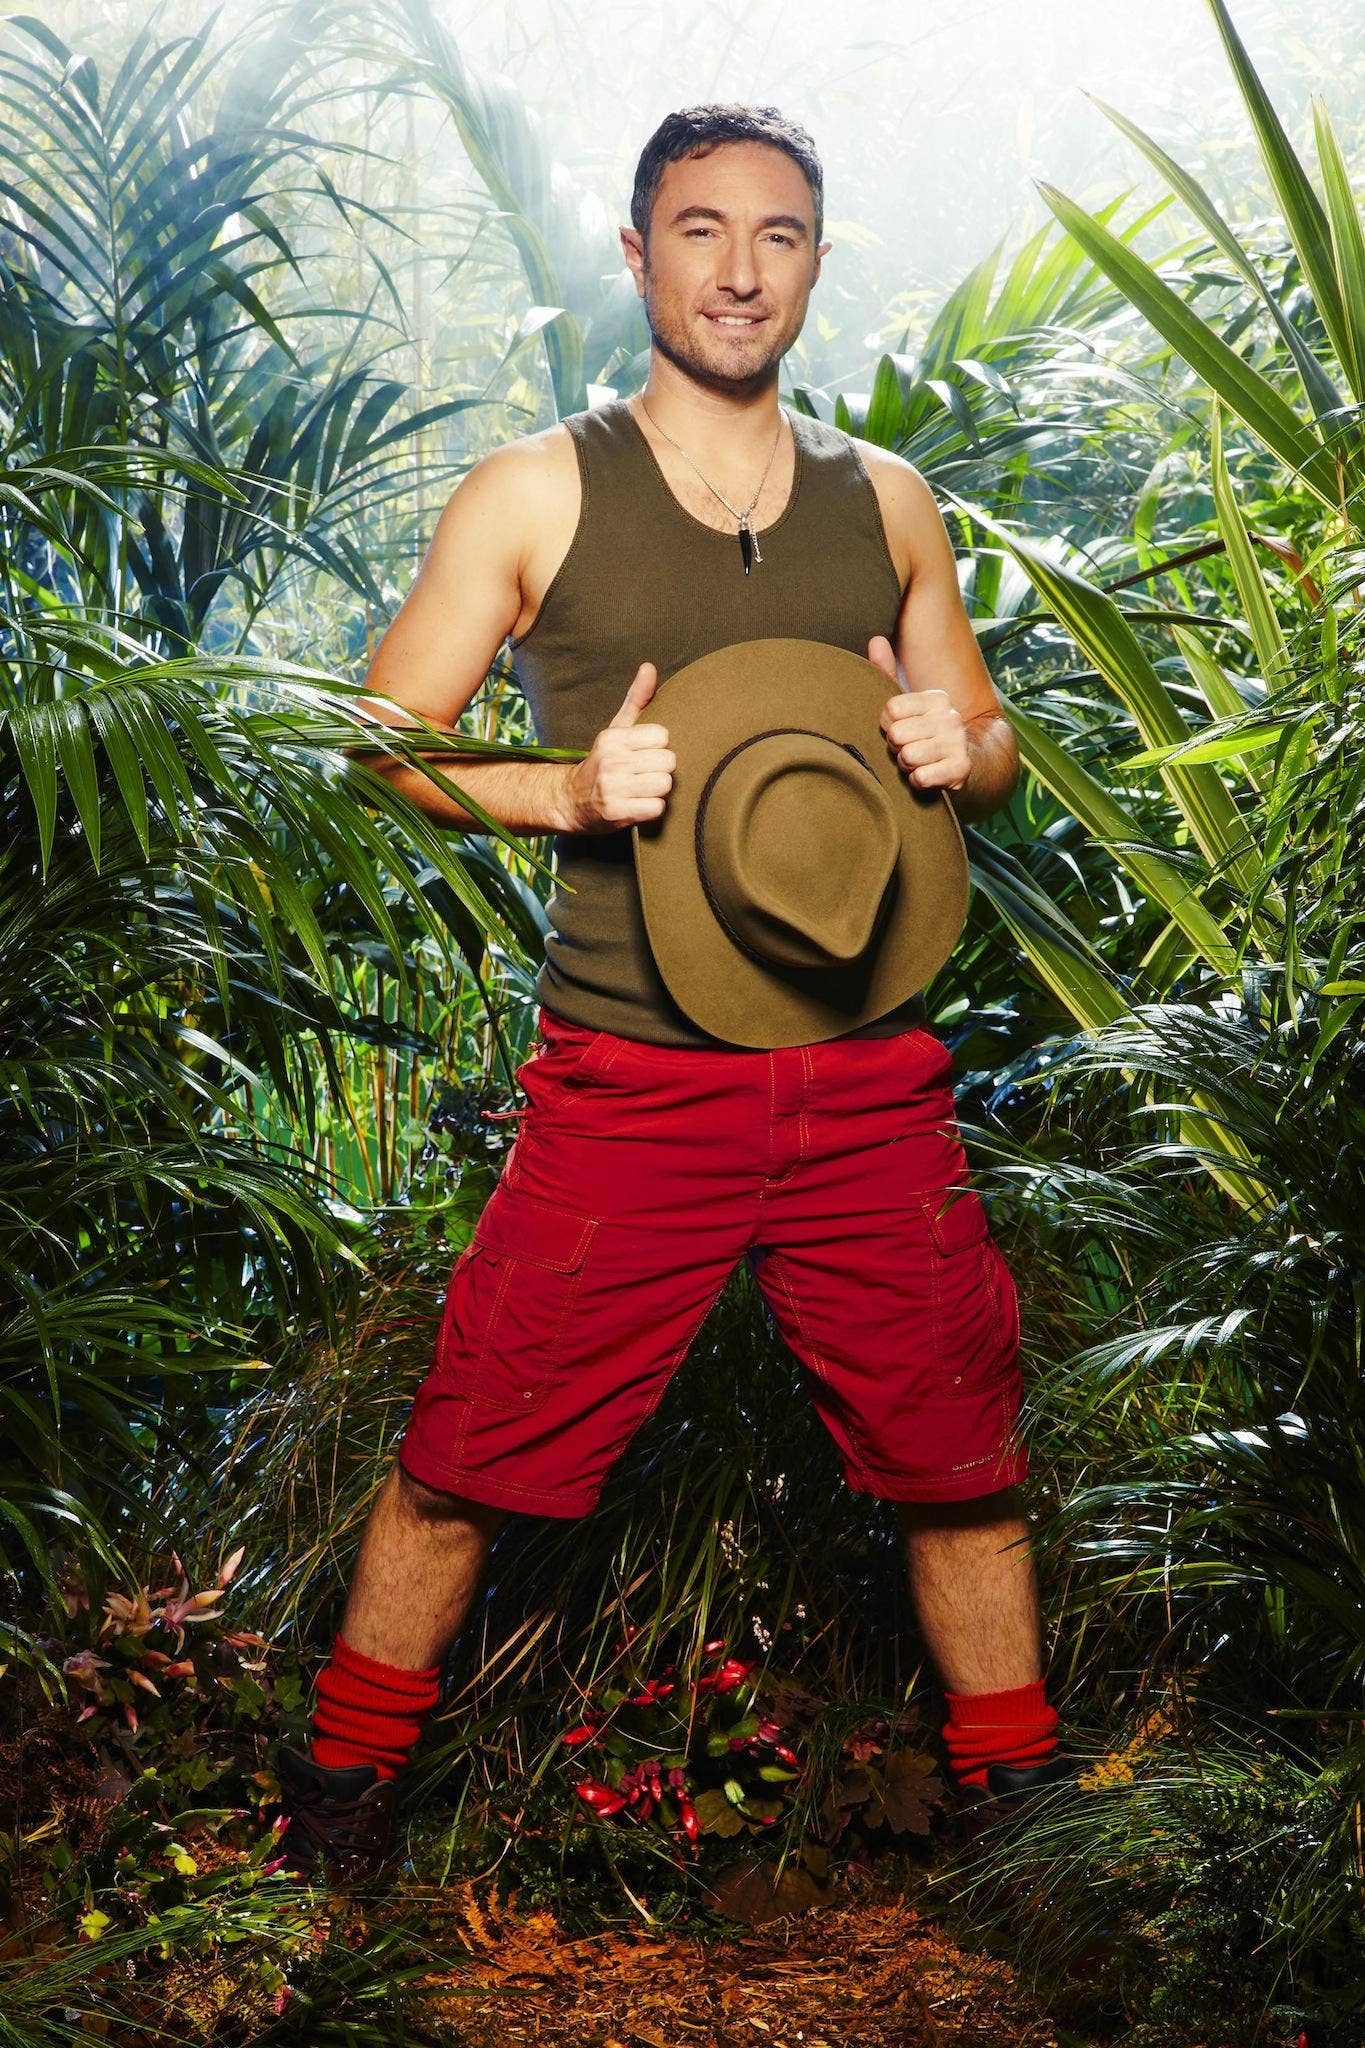 I'm a Celebrity 2013: Professional dancer and ex-Strictly star Vincent Simone